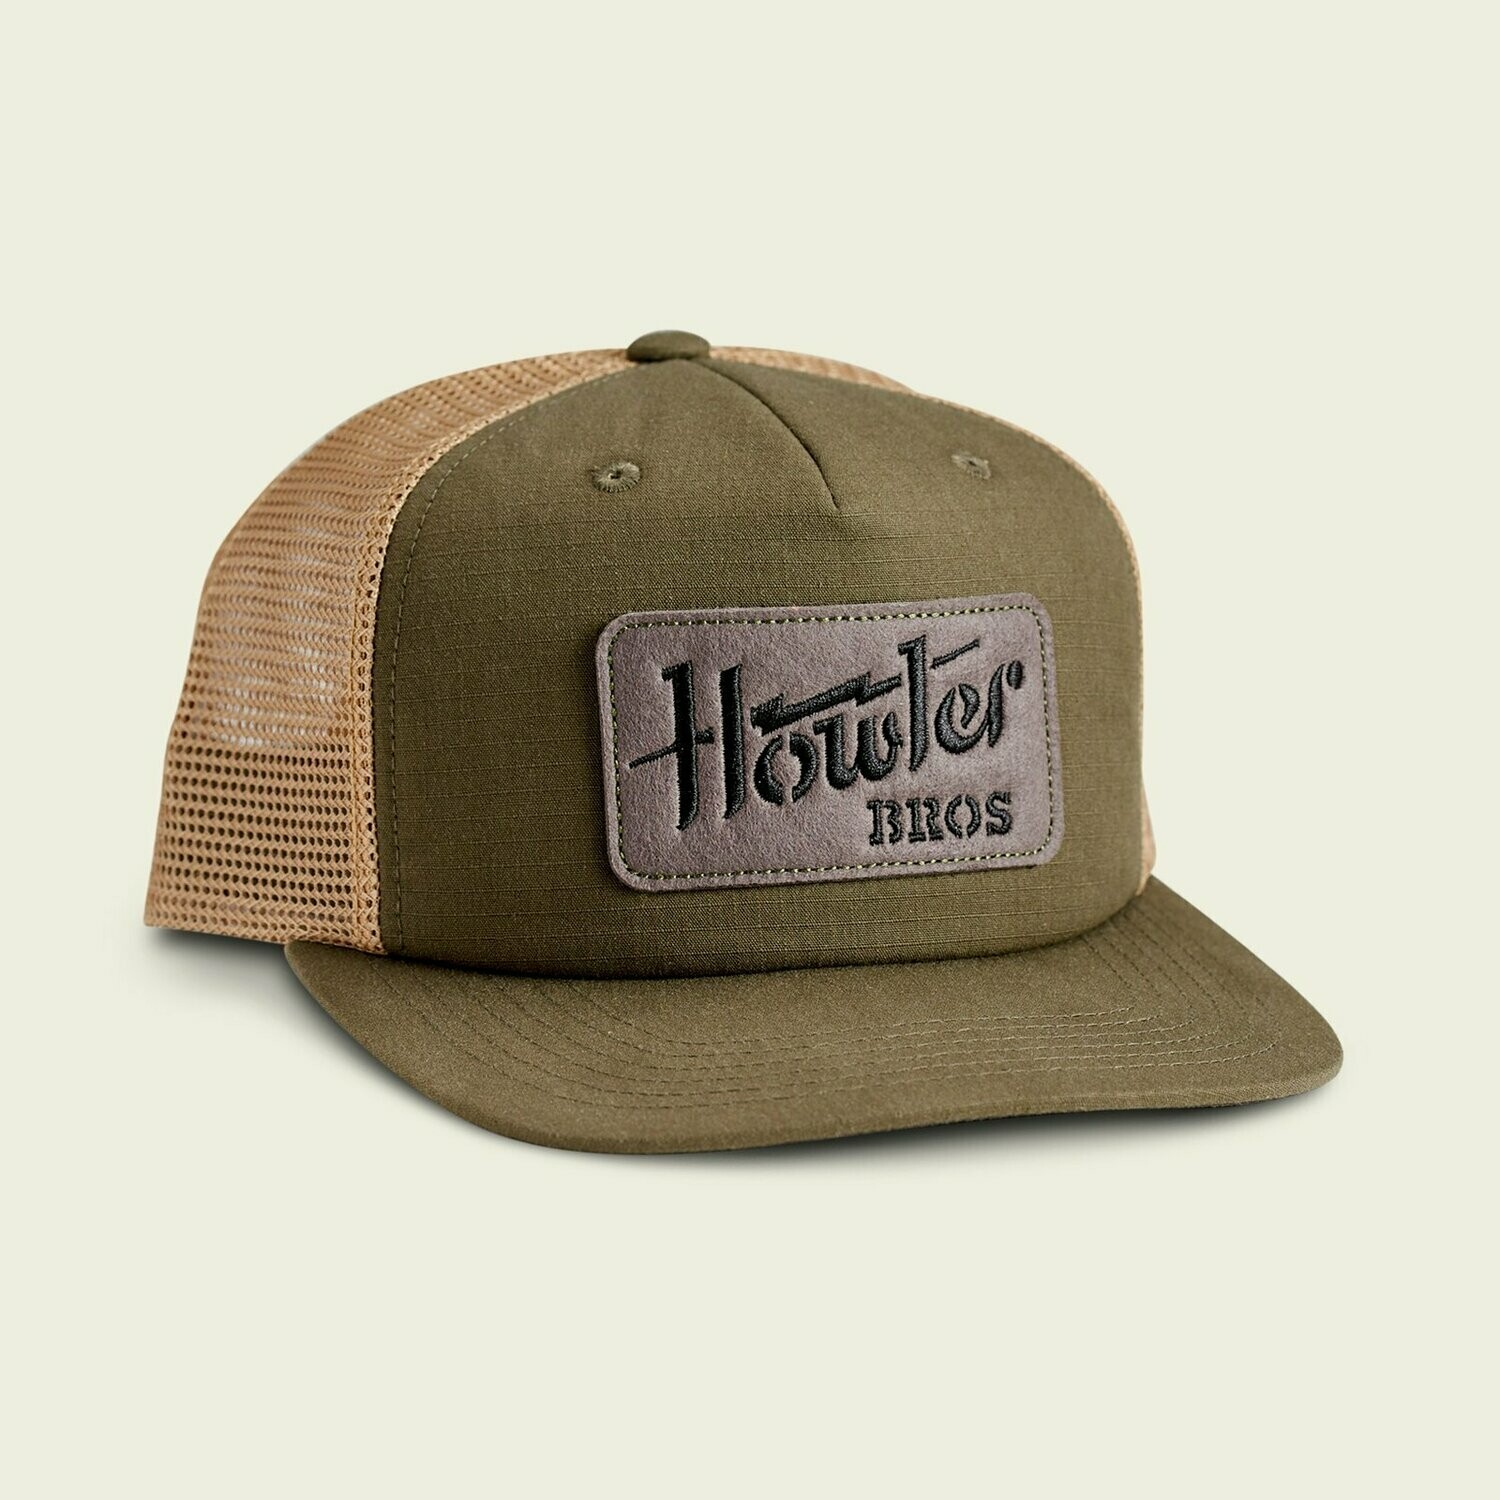 Howler Bros Structured SnapBack Electric Stencil FATIGUE / OLD GOLD